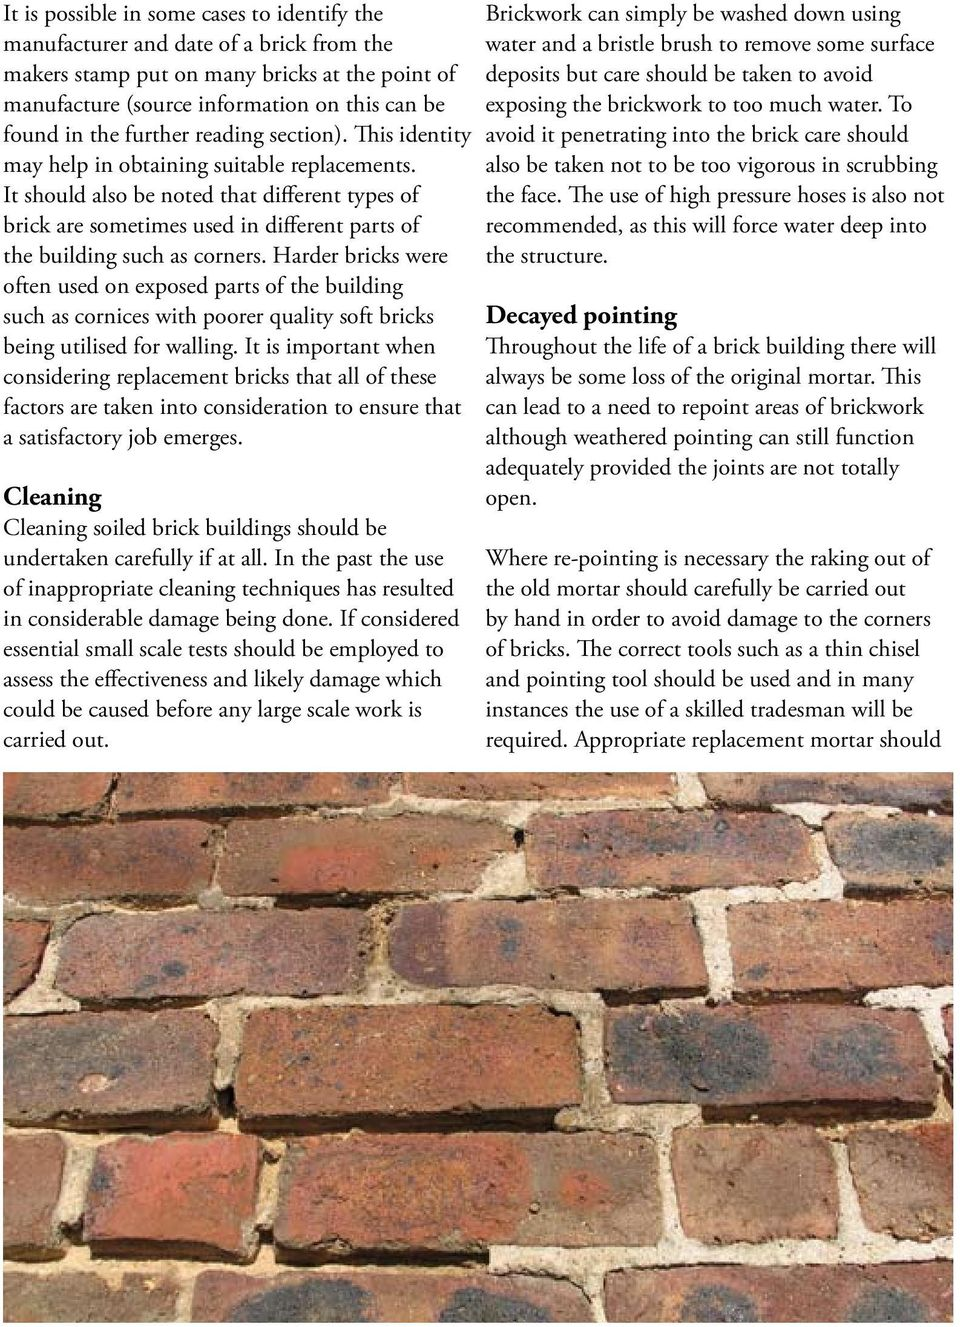 It should also be noted that different types of brick are sometimes used in different parts of the building such as corners.